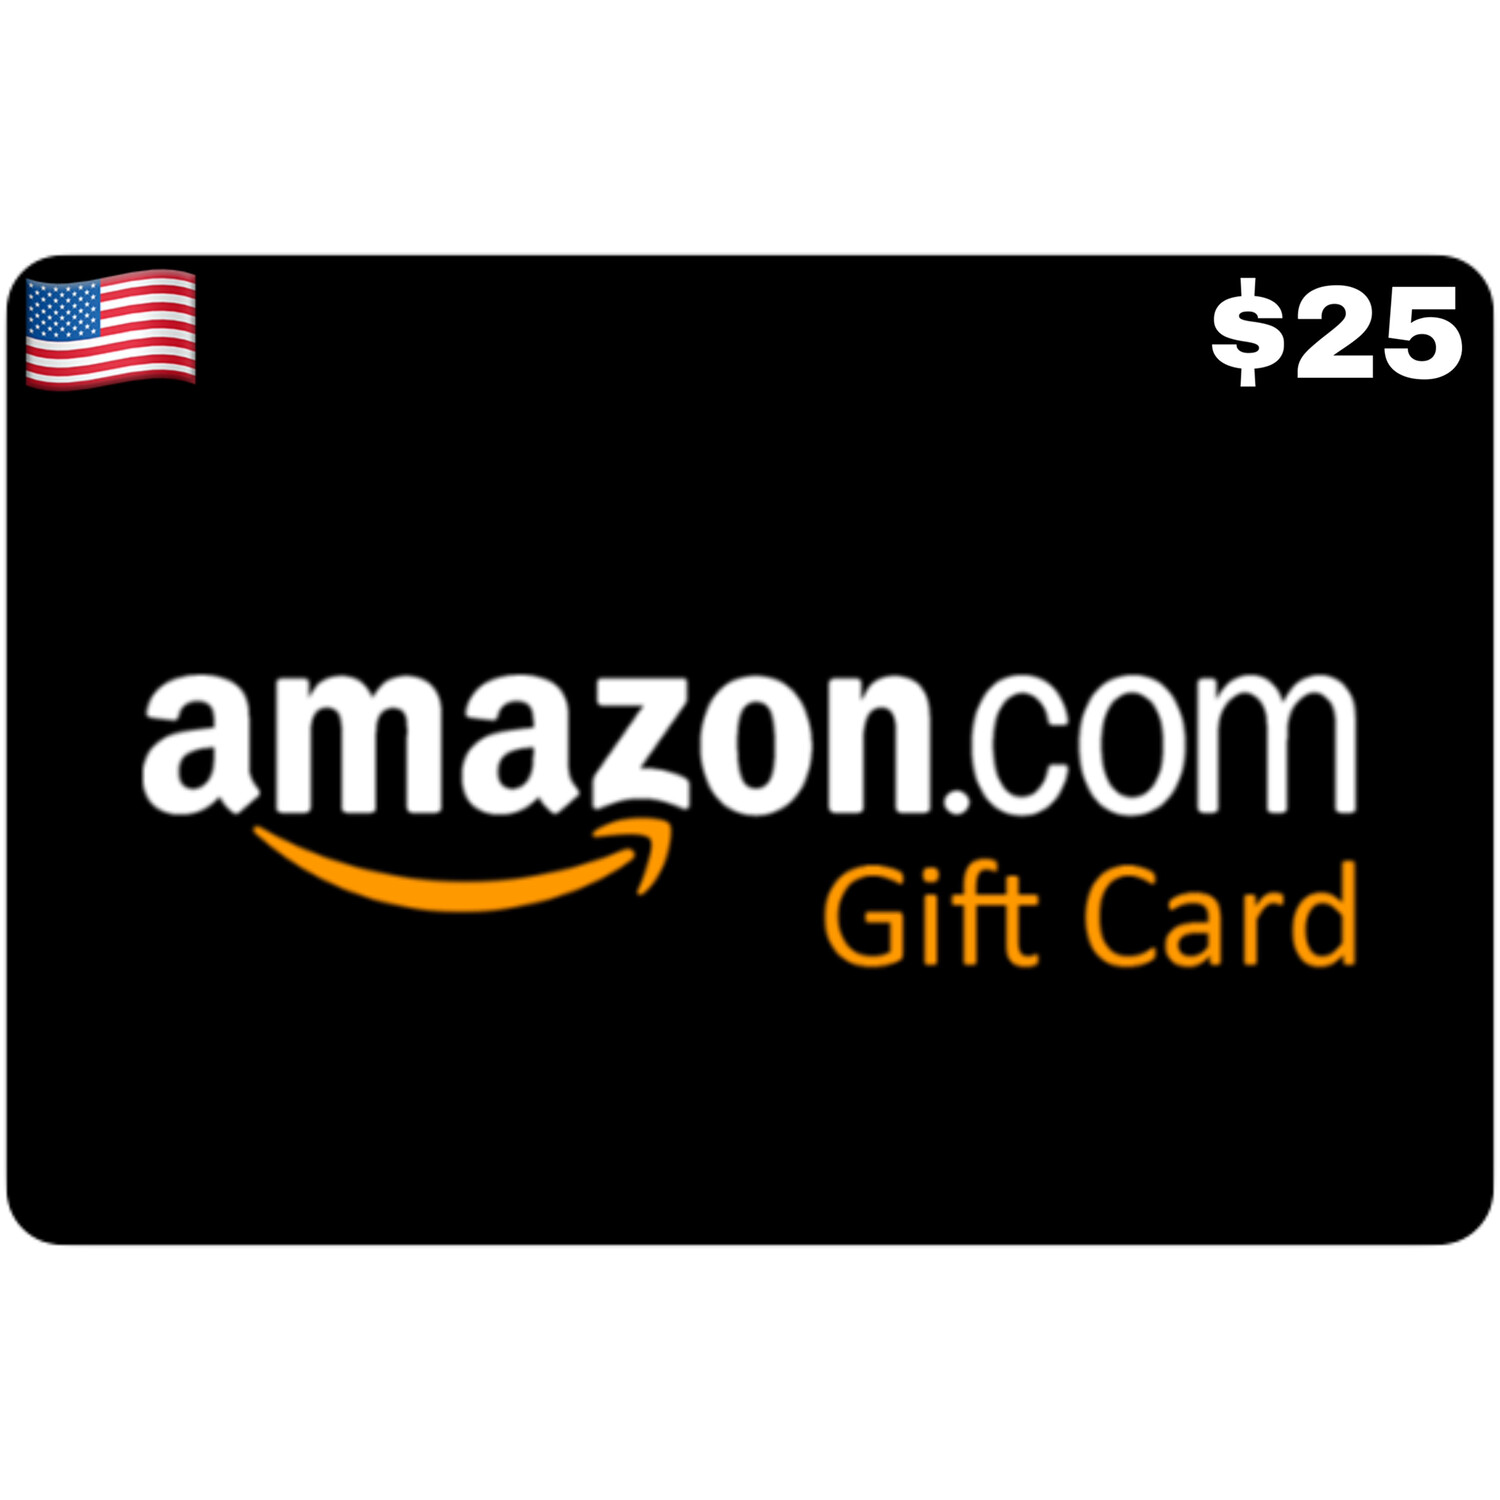 Amazon.com Gift Card US $25